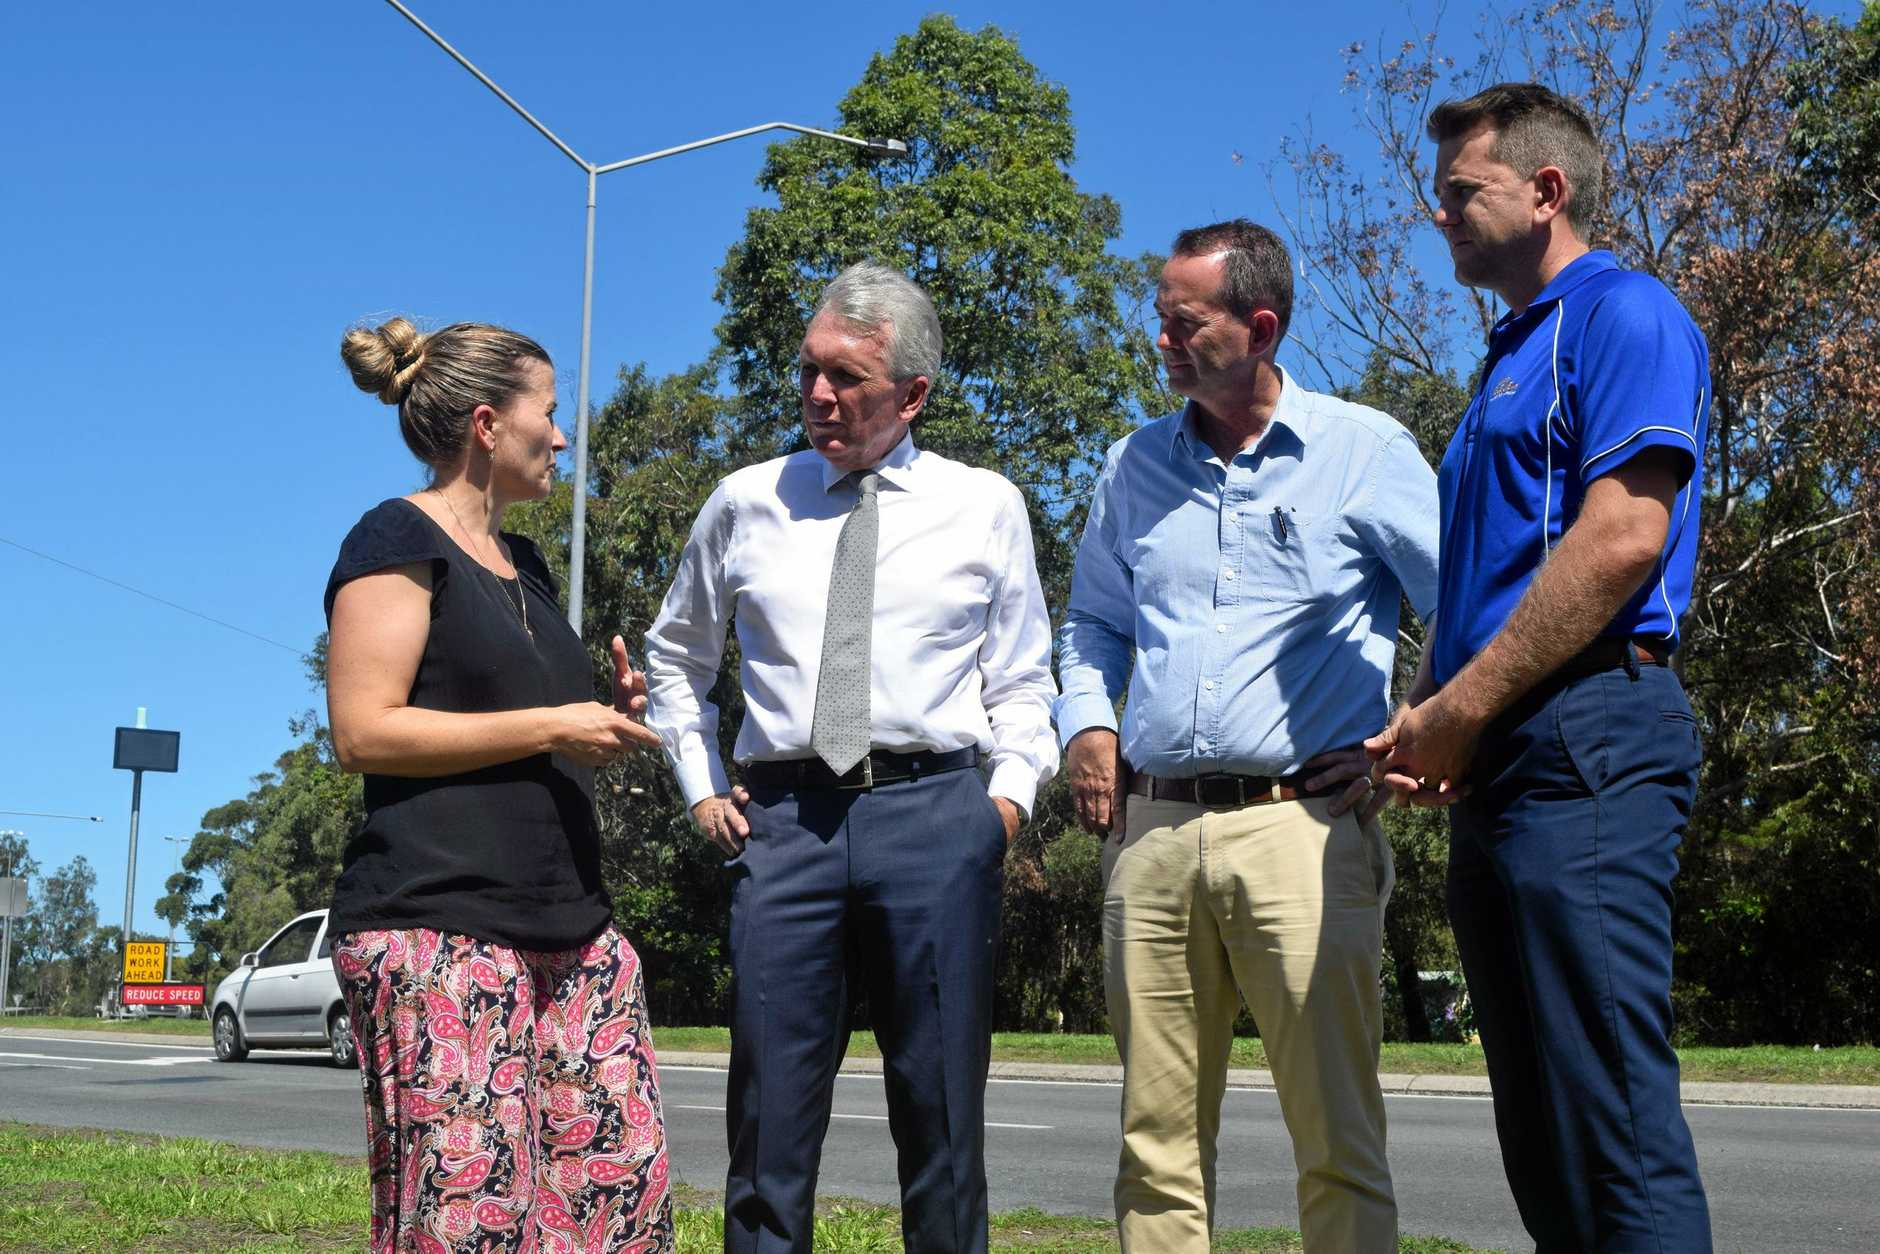 The Federal Government has pledged $5 million towards a Caloundra Road Network Planning Study to ease congestion around Caloundra and Kawana.